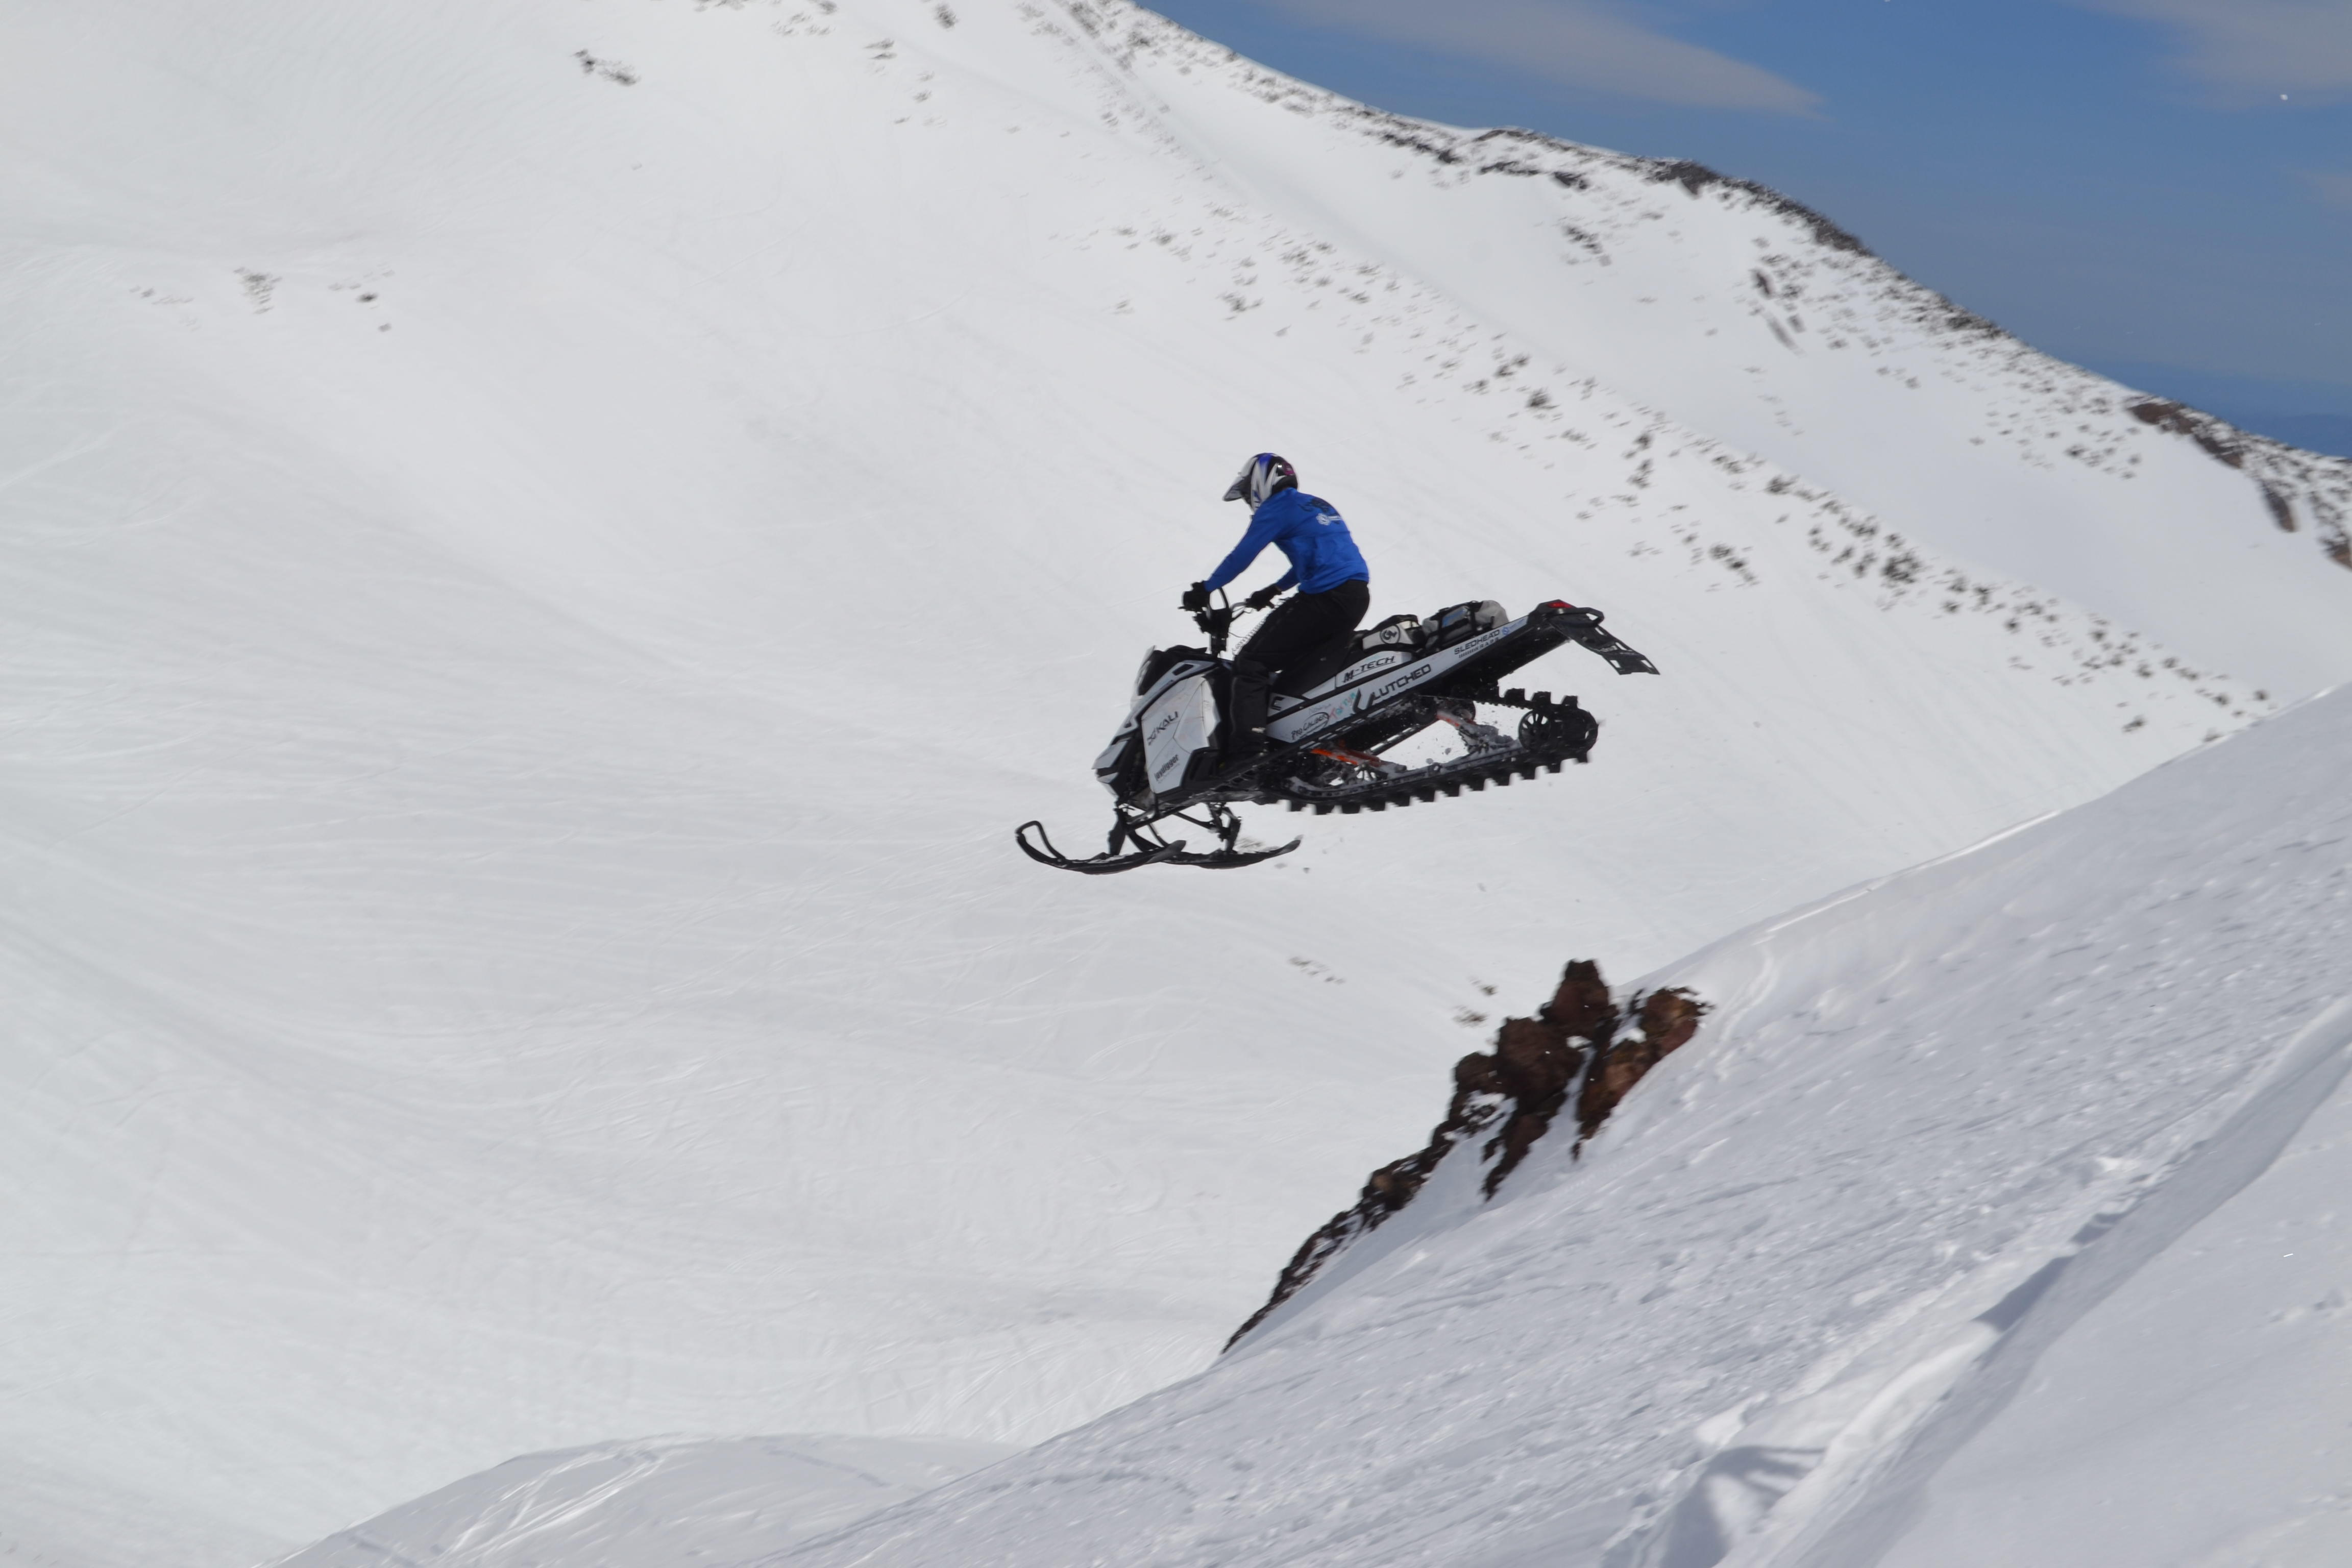 Cale Voos Clutched Films mountain sled big air w tunnel bag ... 2c2f38033